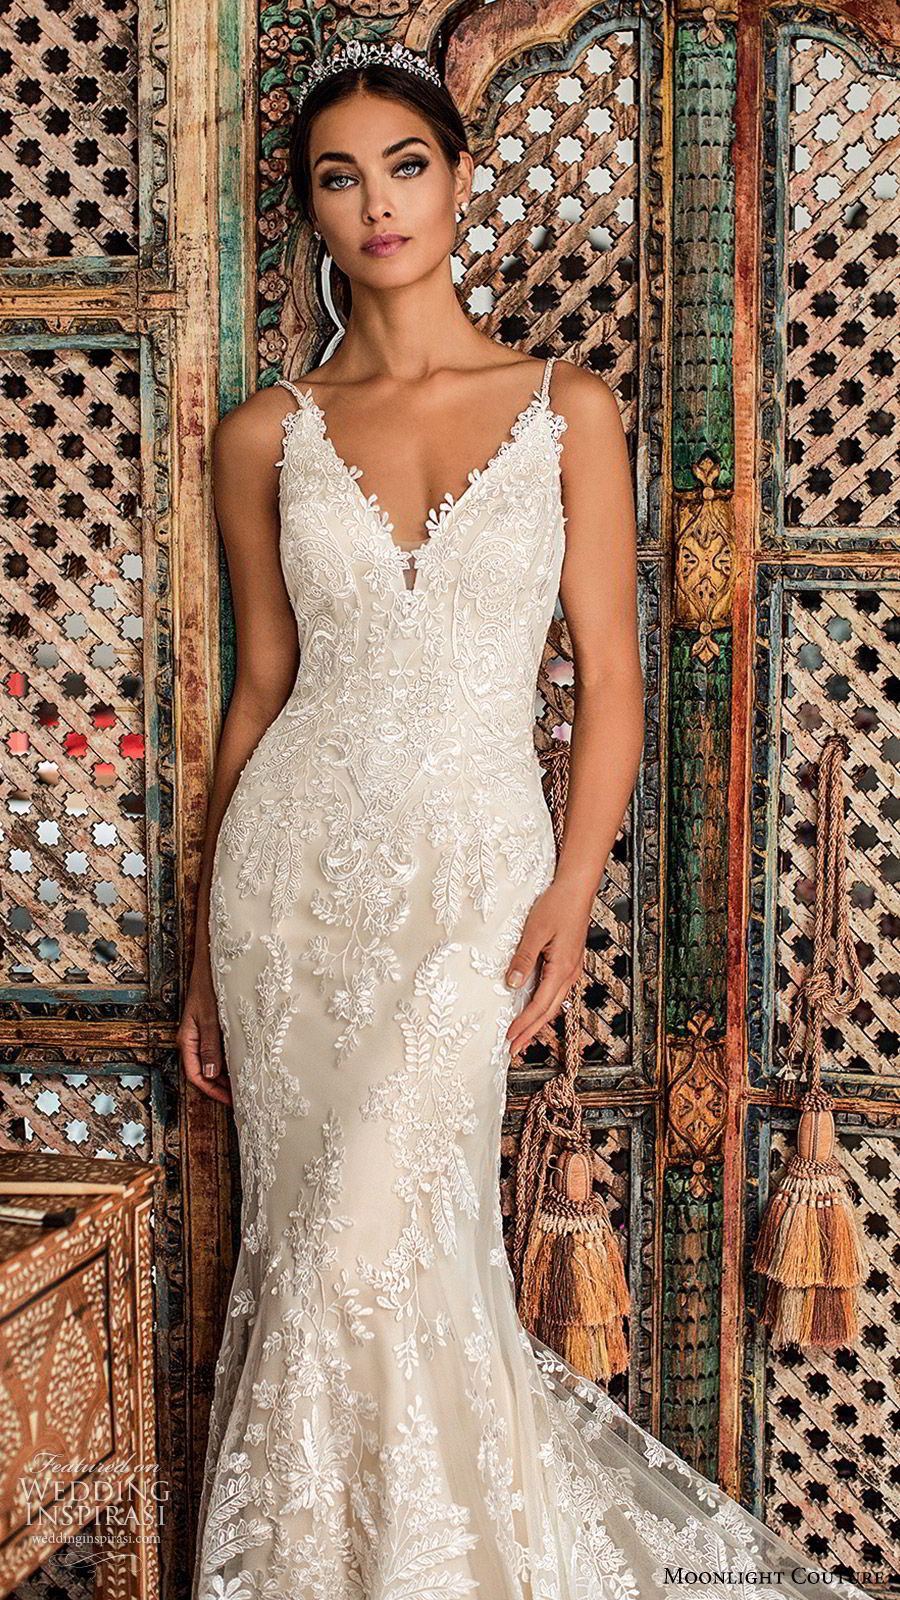 moonlight couture fall 2019 bridal sleeveless thin straps v neckline fully embellished lace sheath fit flare mermaid wedding dress (4) elegant low back chapel train champagne zv